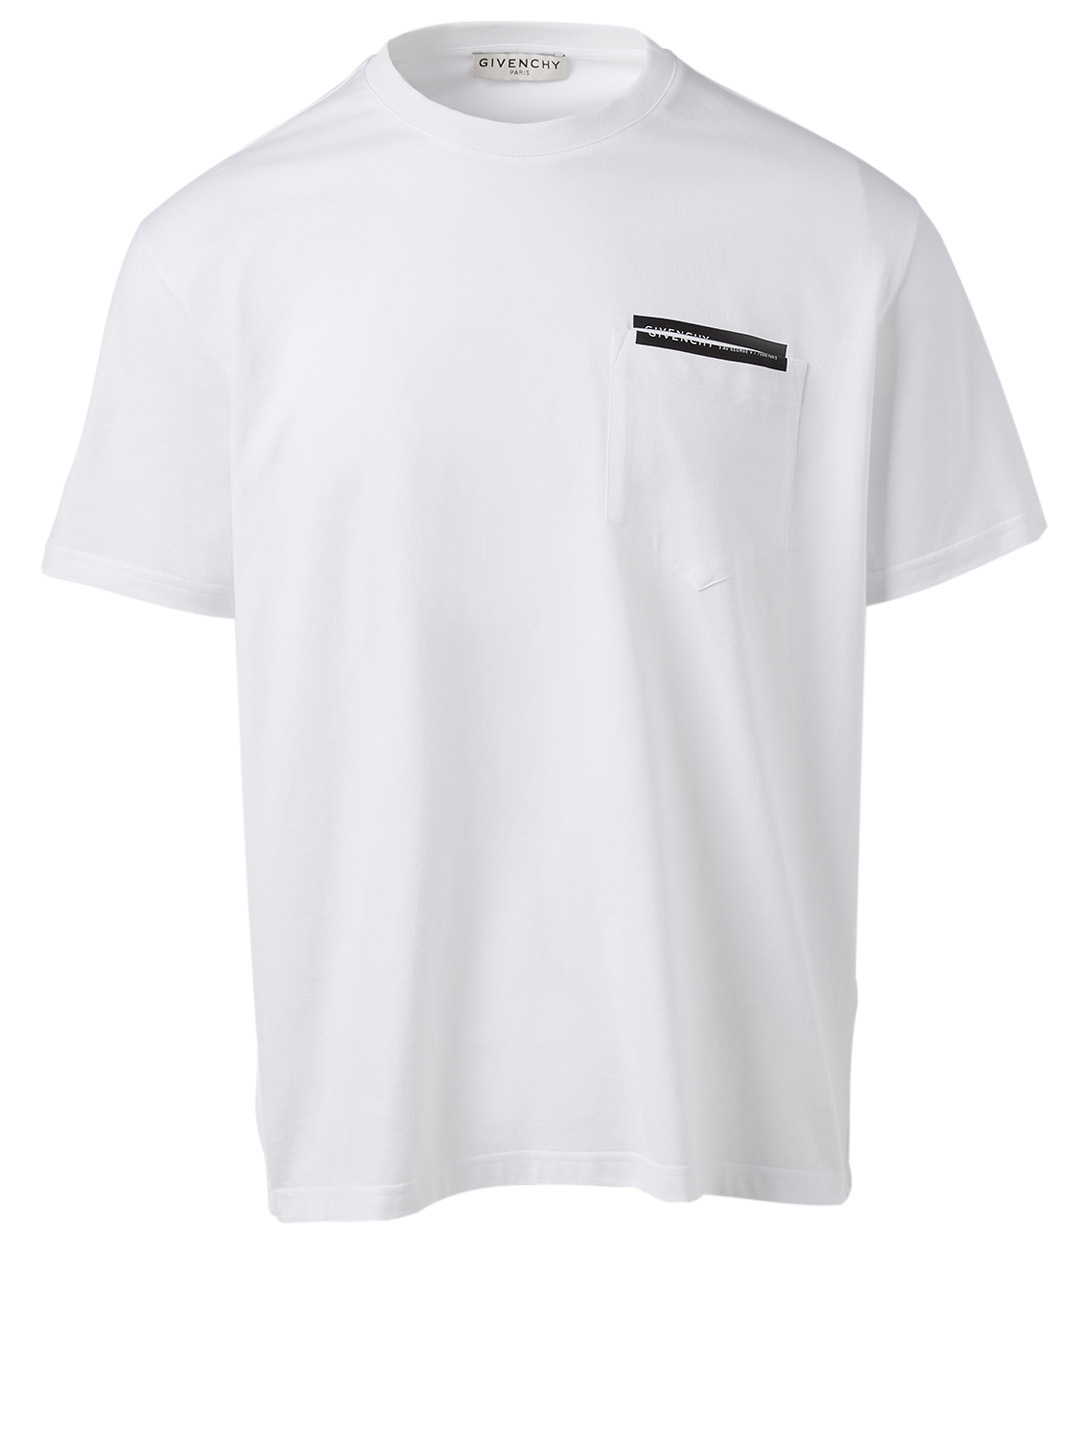 GIVENCHY Cotton T-Shirt With Laser Cut Men's White